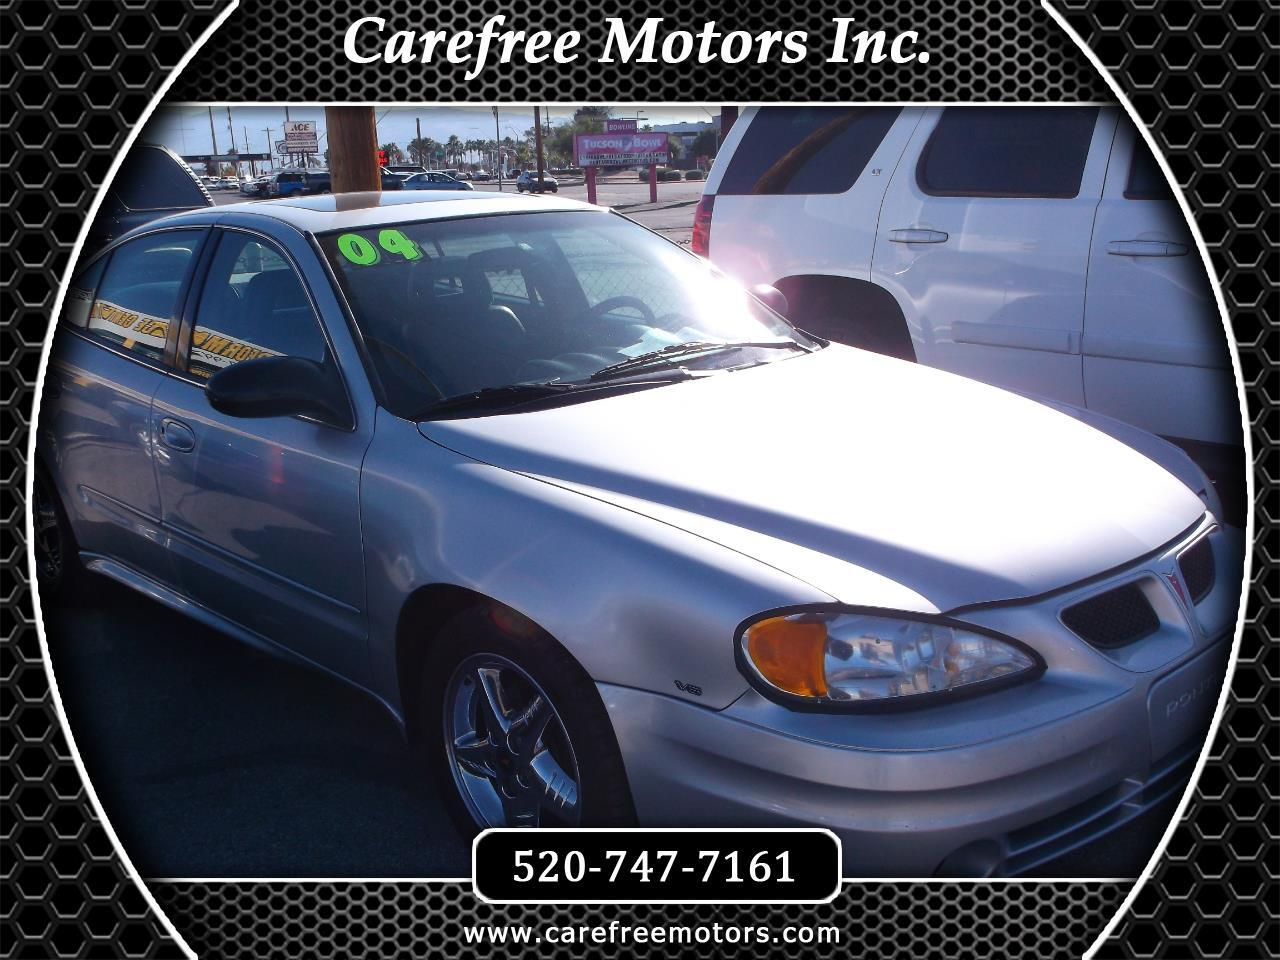 2004 Pontiac Grand Am 4dr Sdn SE